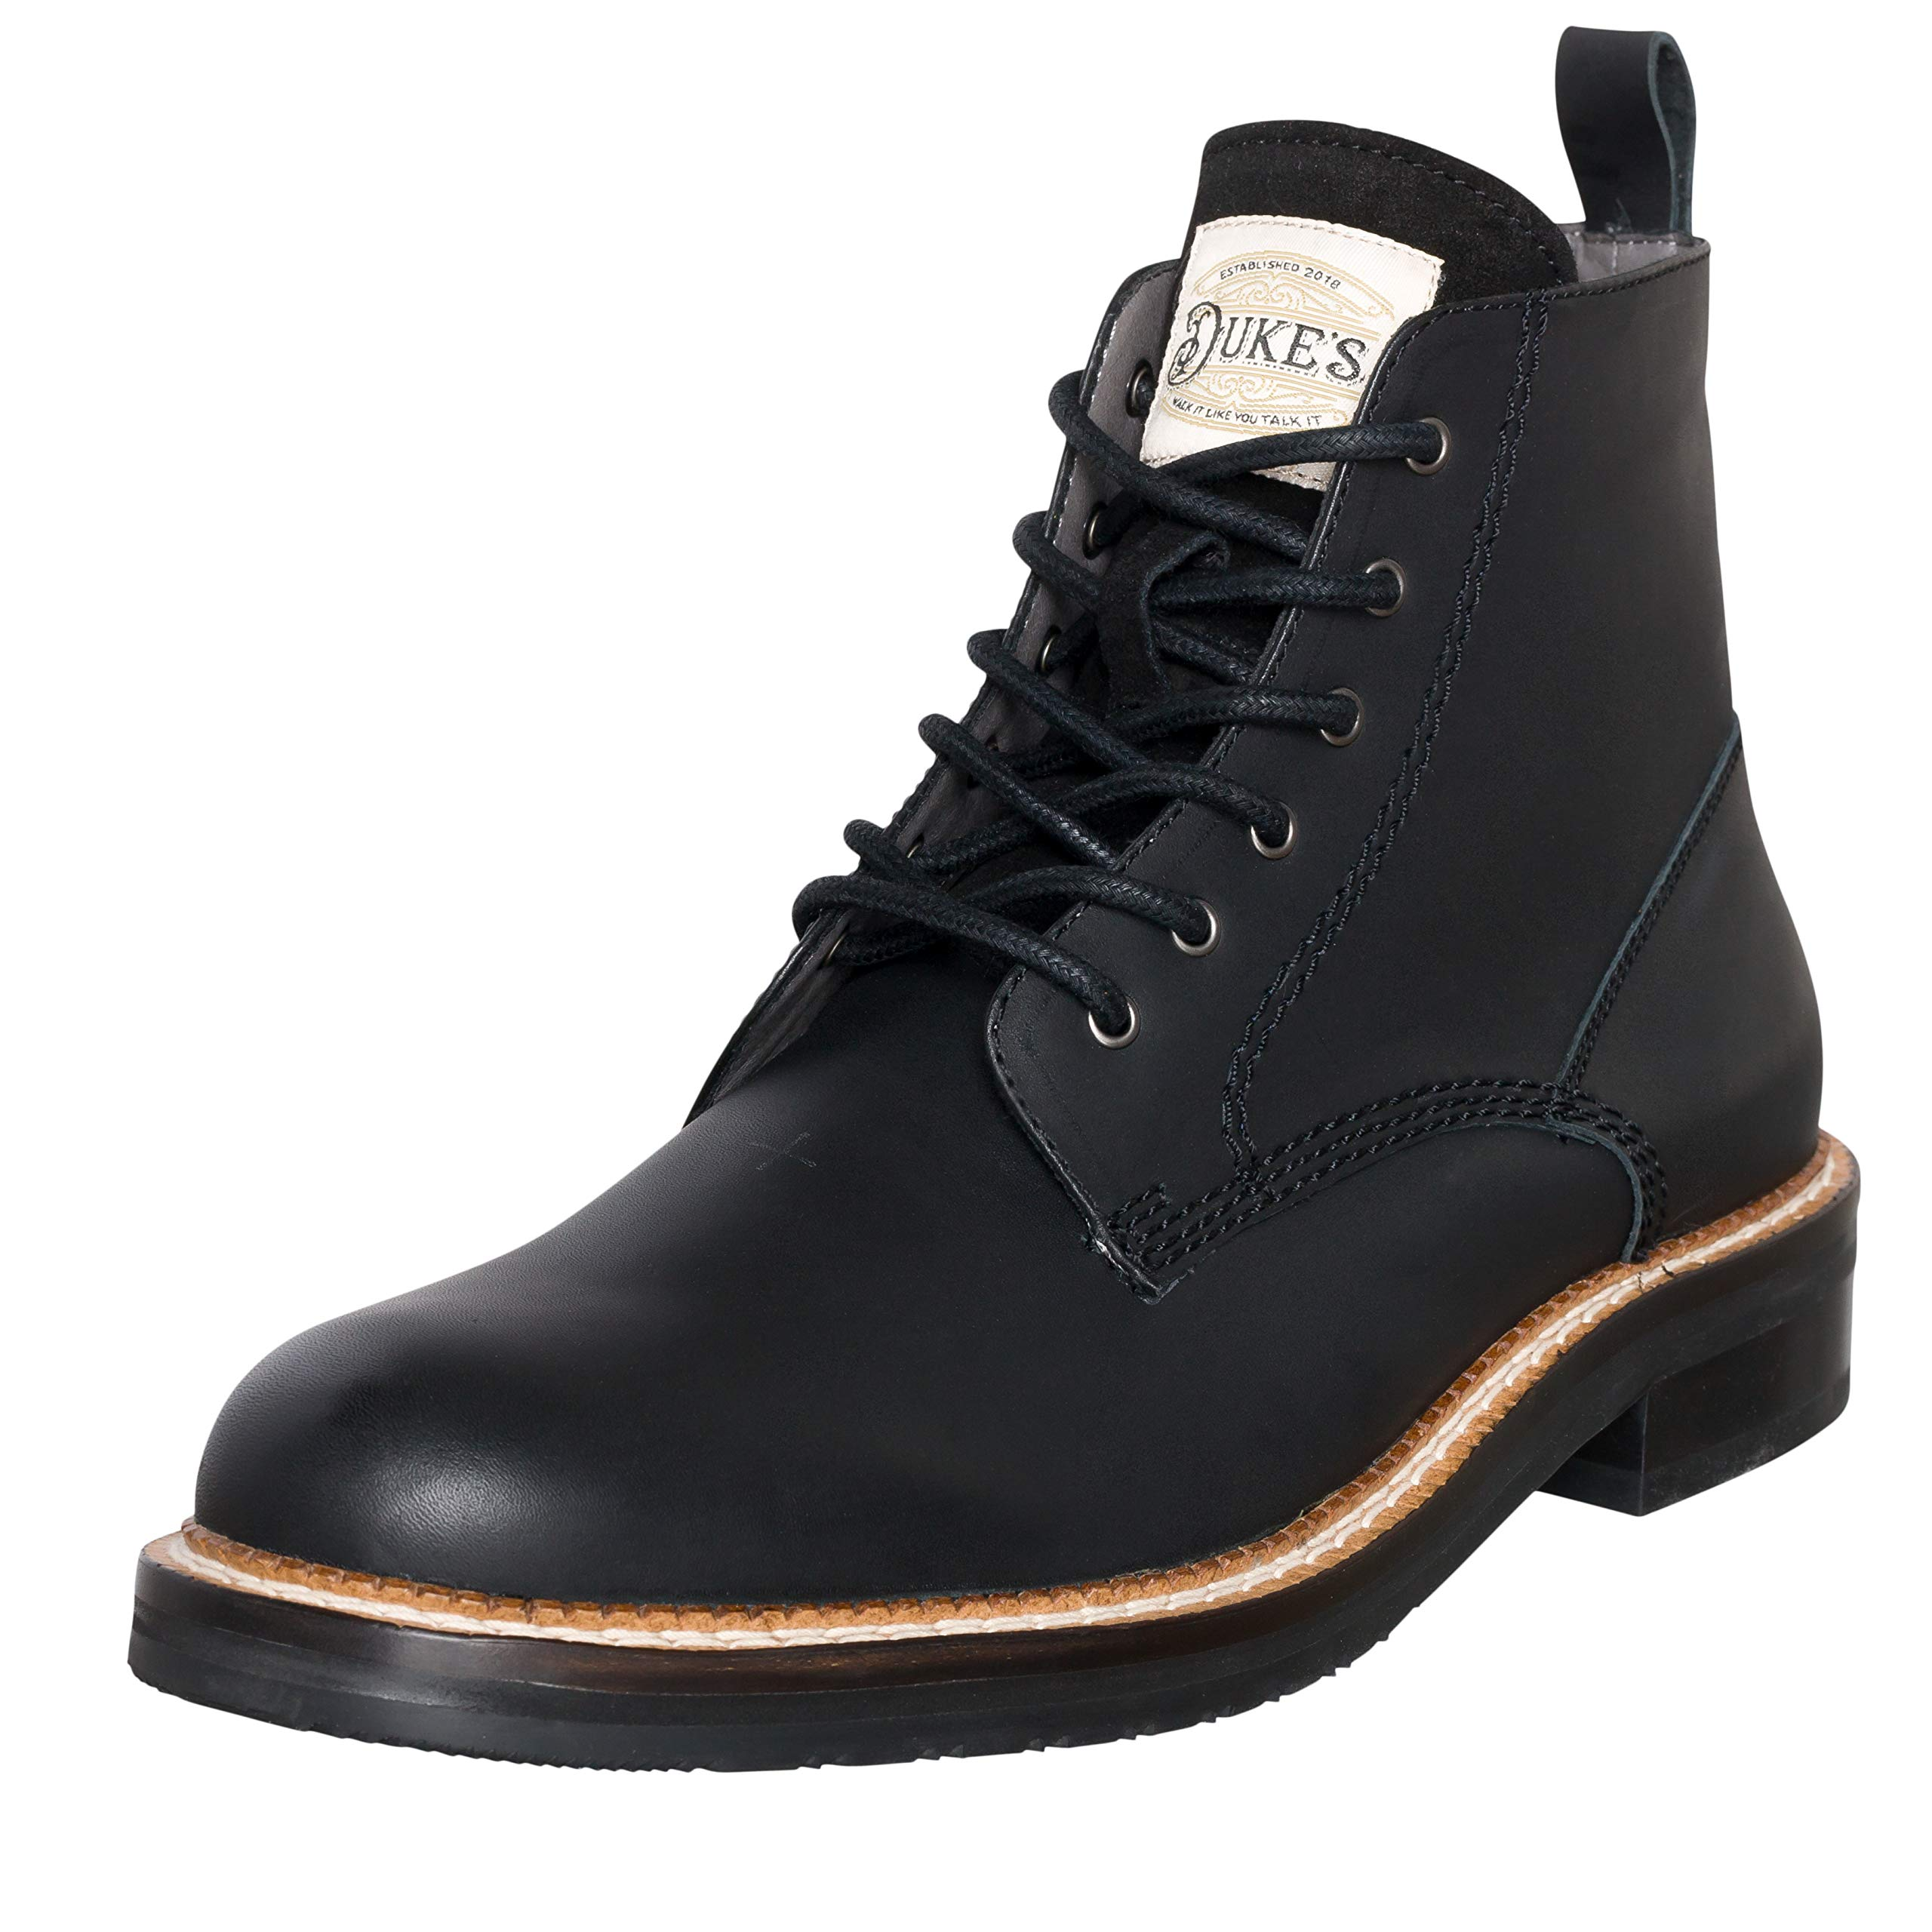 Duke's Mens Boots - Austin Leather Boot with Premium Cushion Insole (Black)